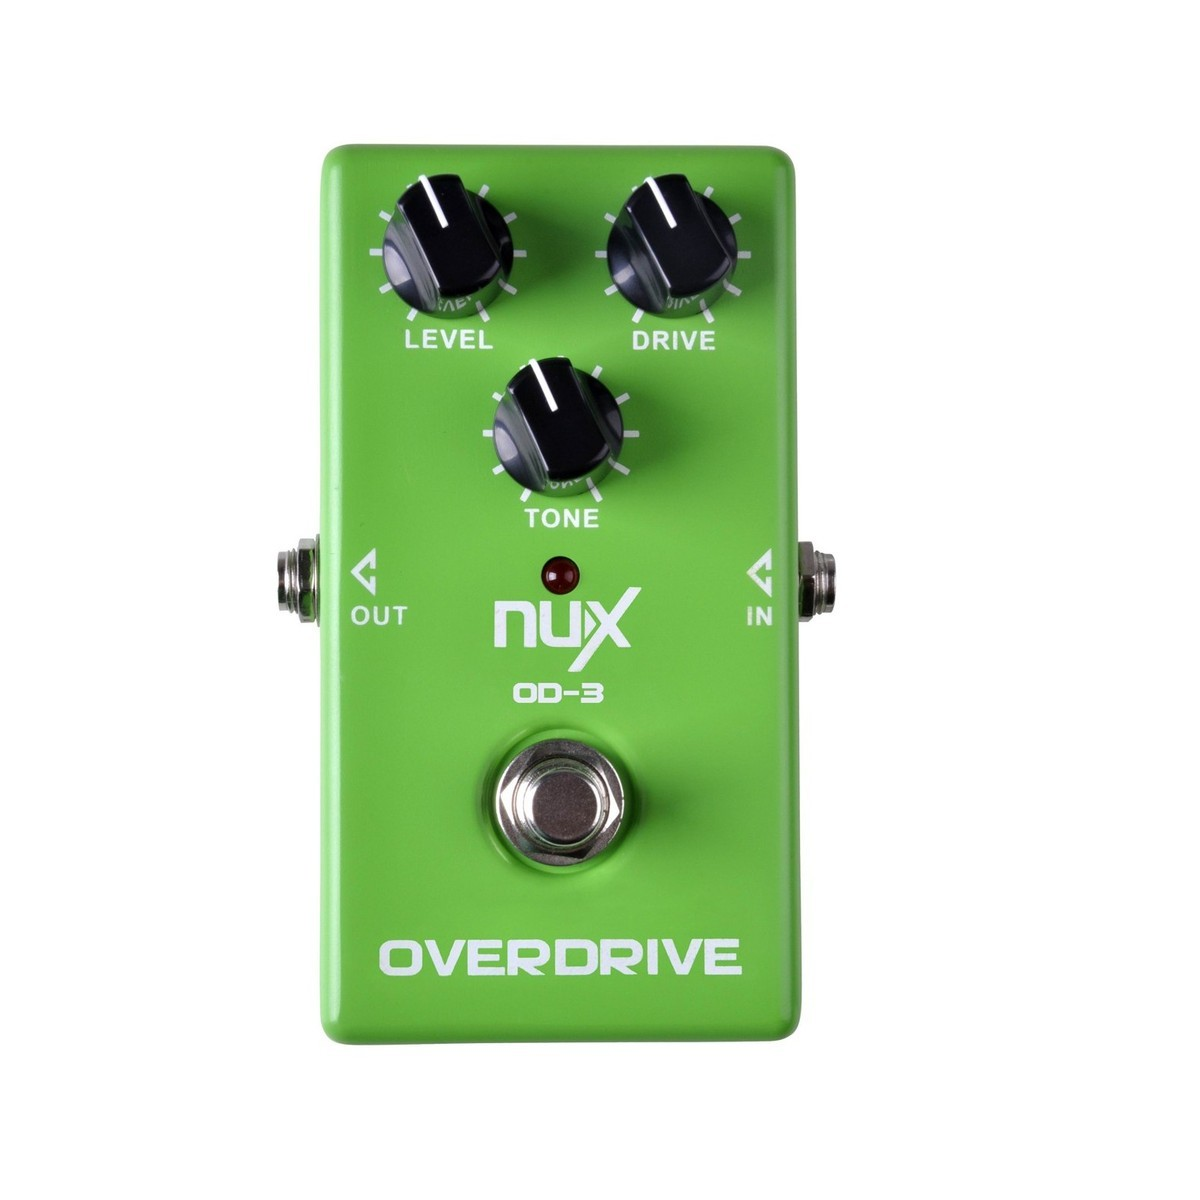 NUX OD 3 Overdrive Guitar Effects Pedal